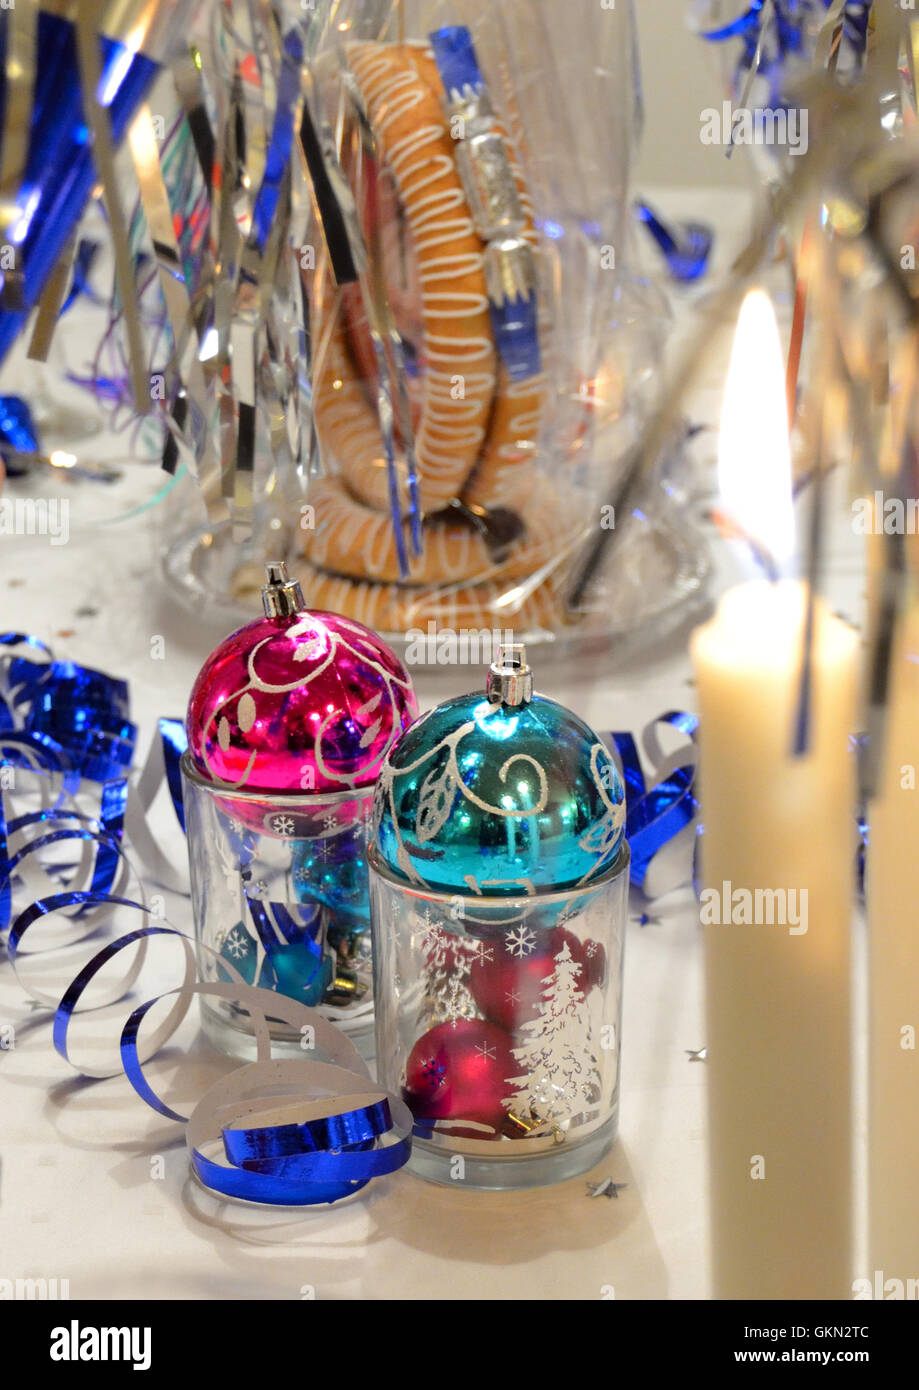 A New Year's Eve decorated table with to candles. - Stock Image